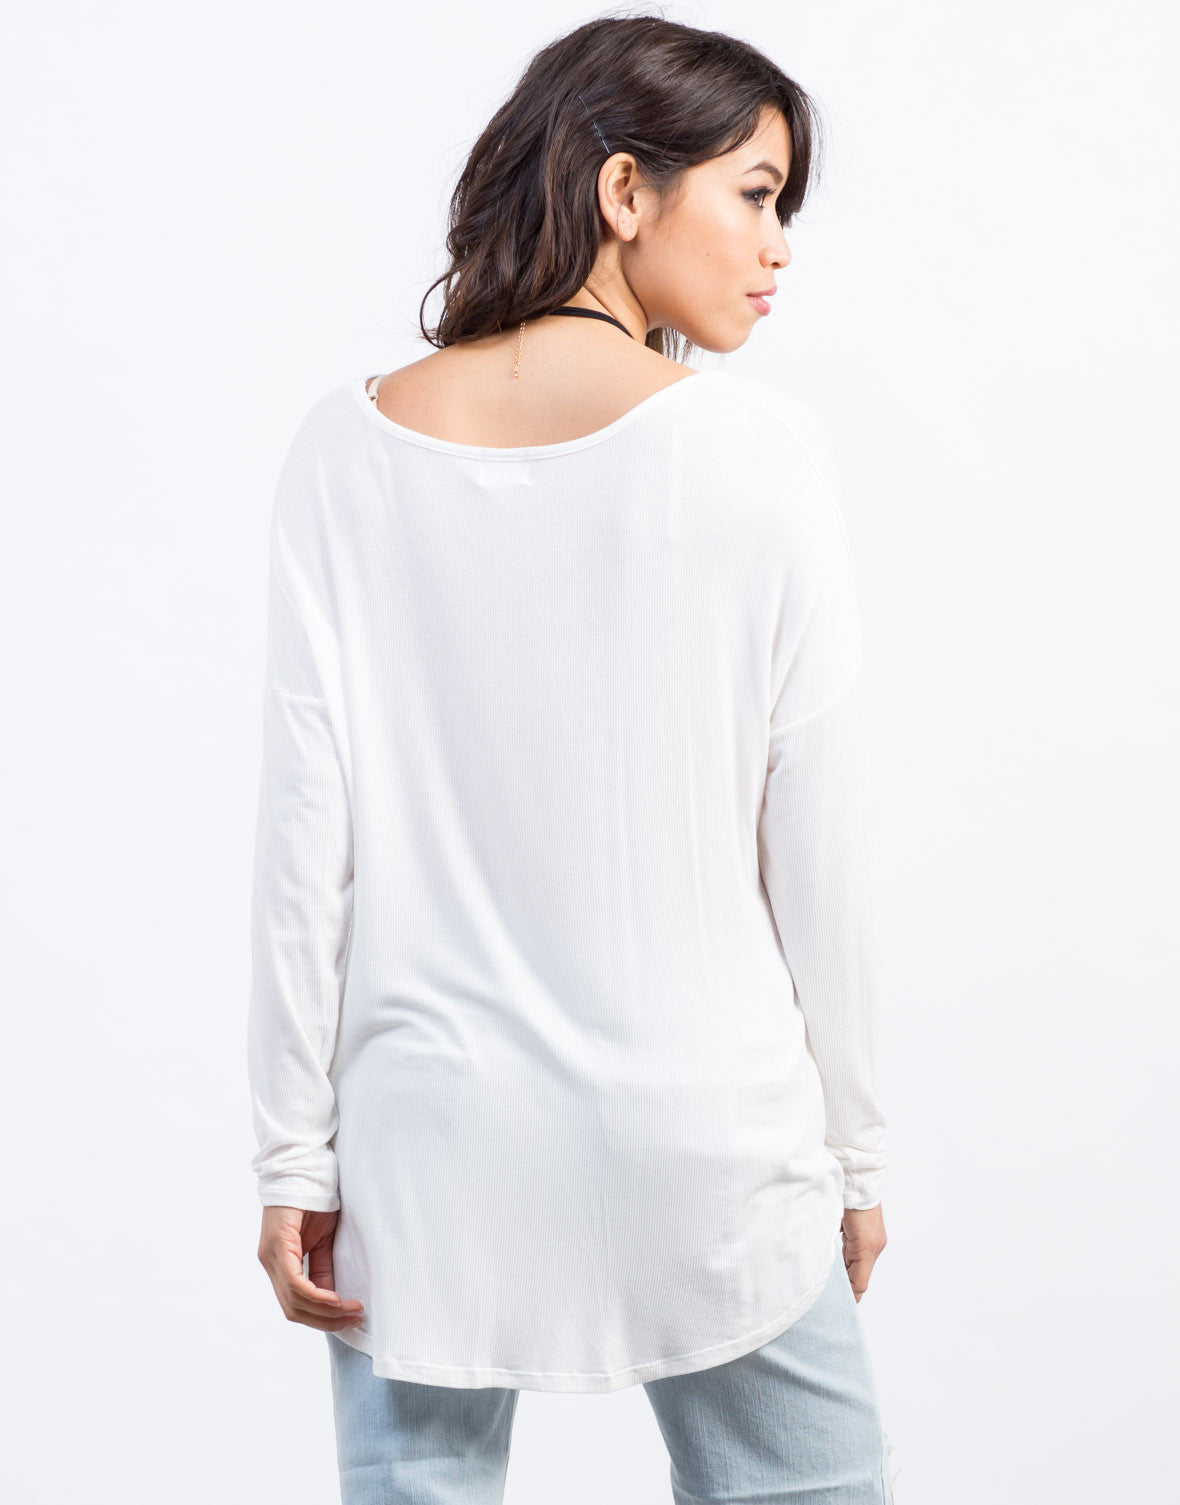 Back View of Long Sleeve Ribbed Tee